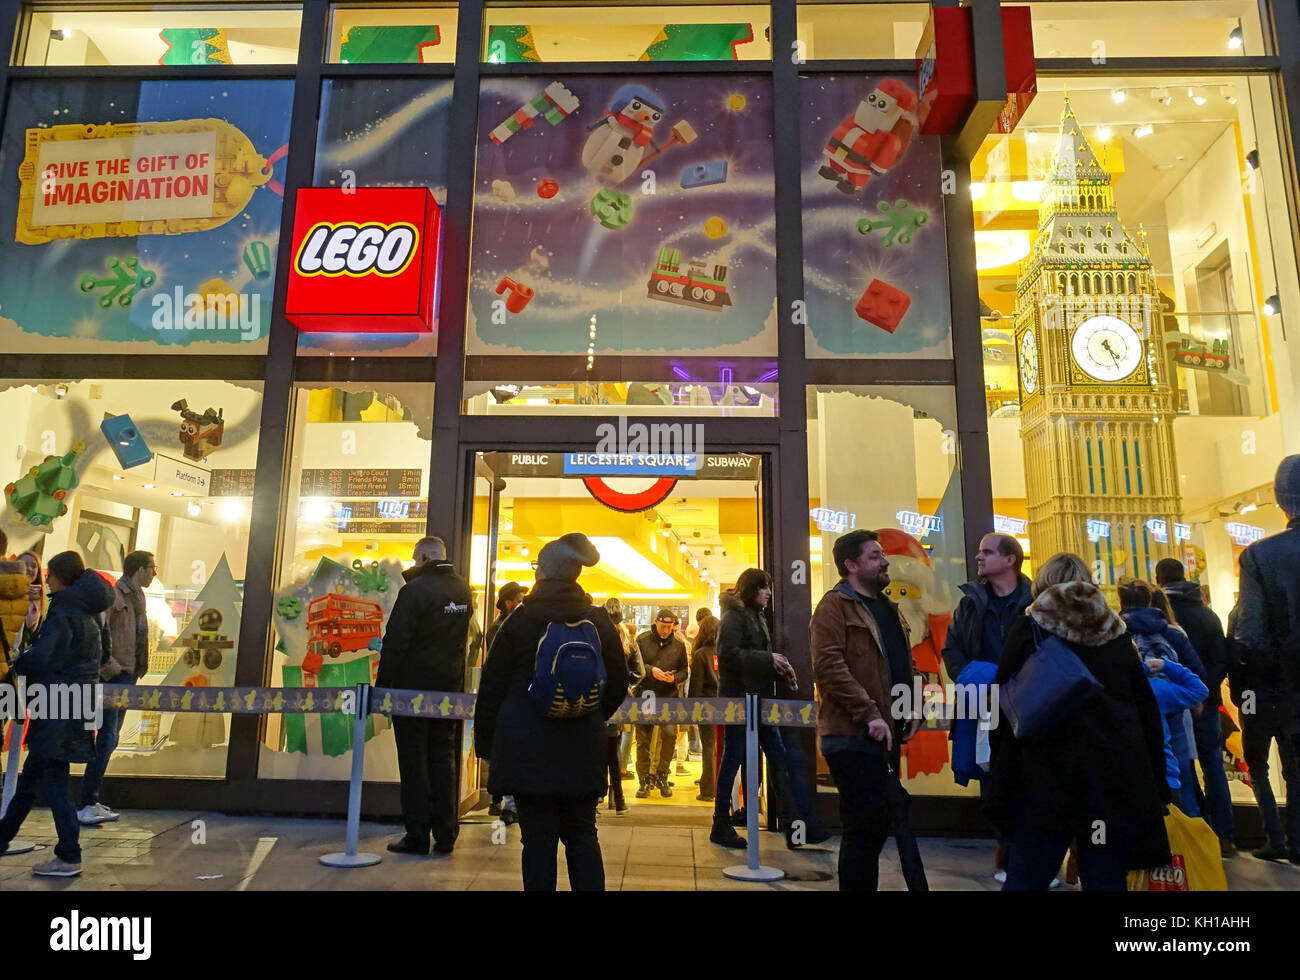 Lego Store, Leicester Square, London - Stock Image